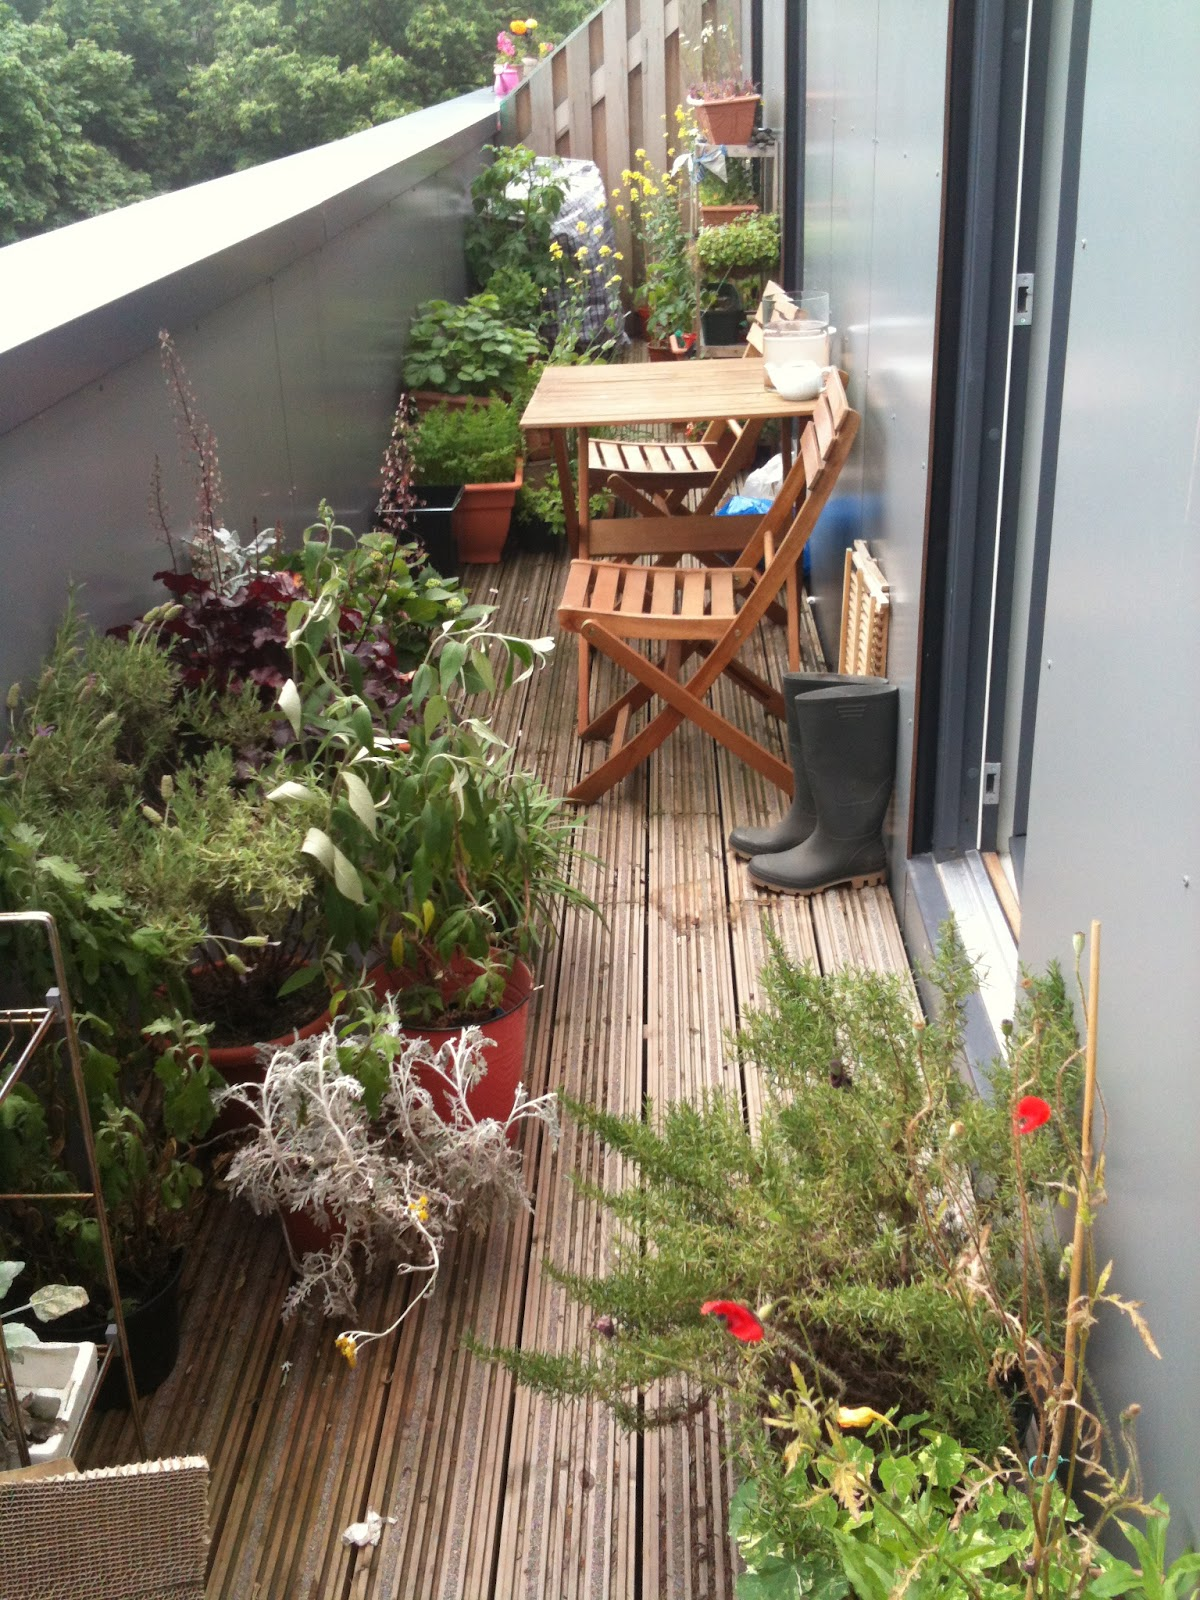 Narrow balcony garden channeling the backyard view